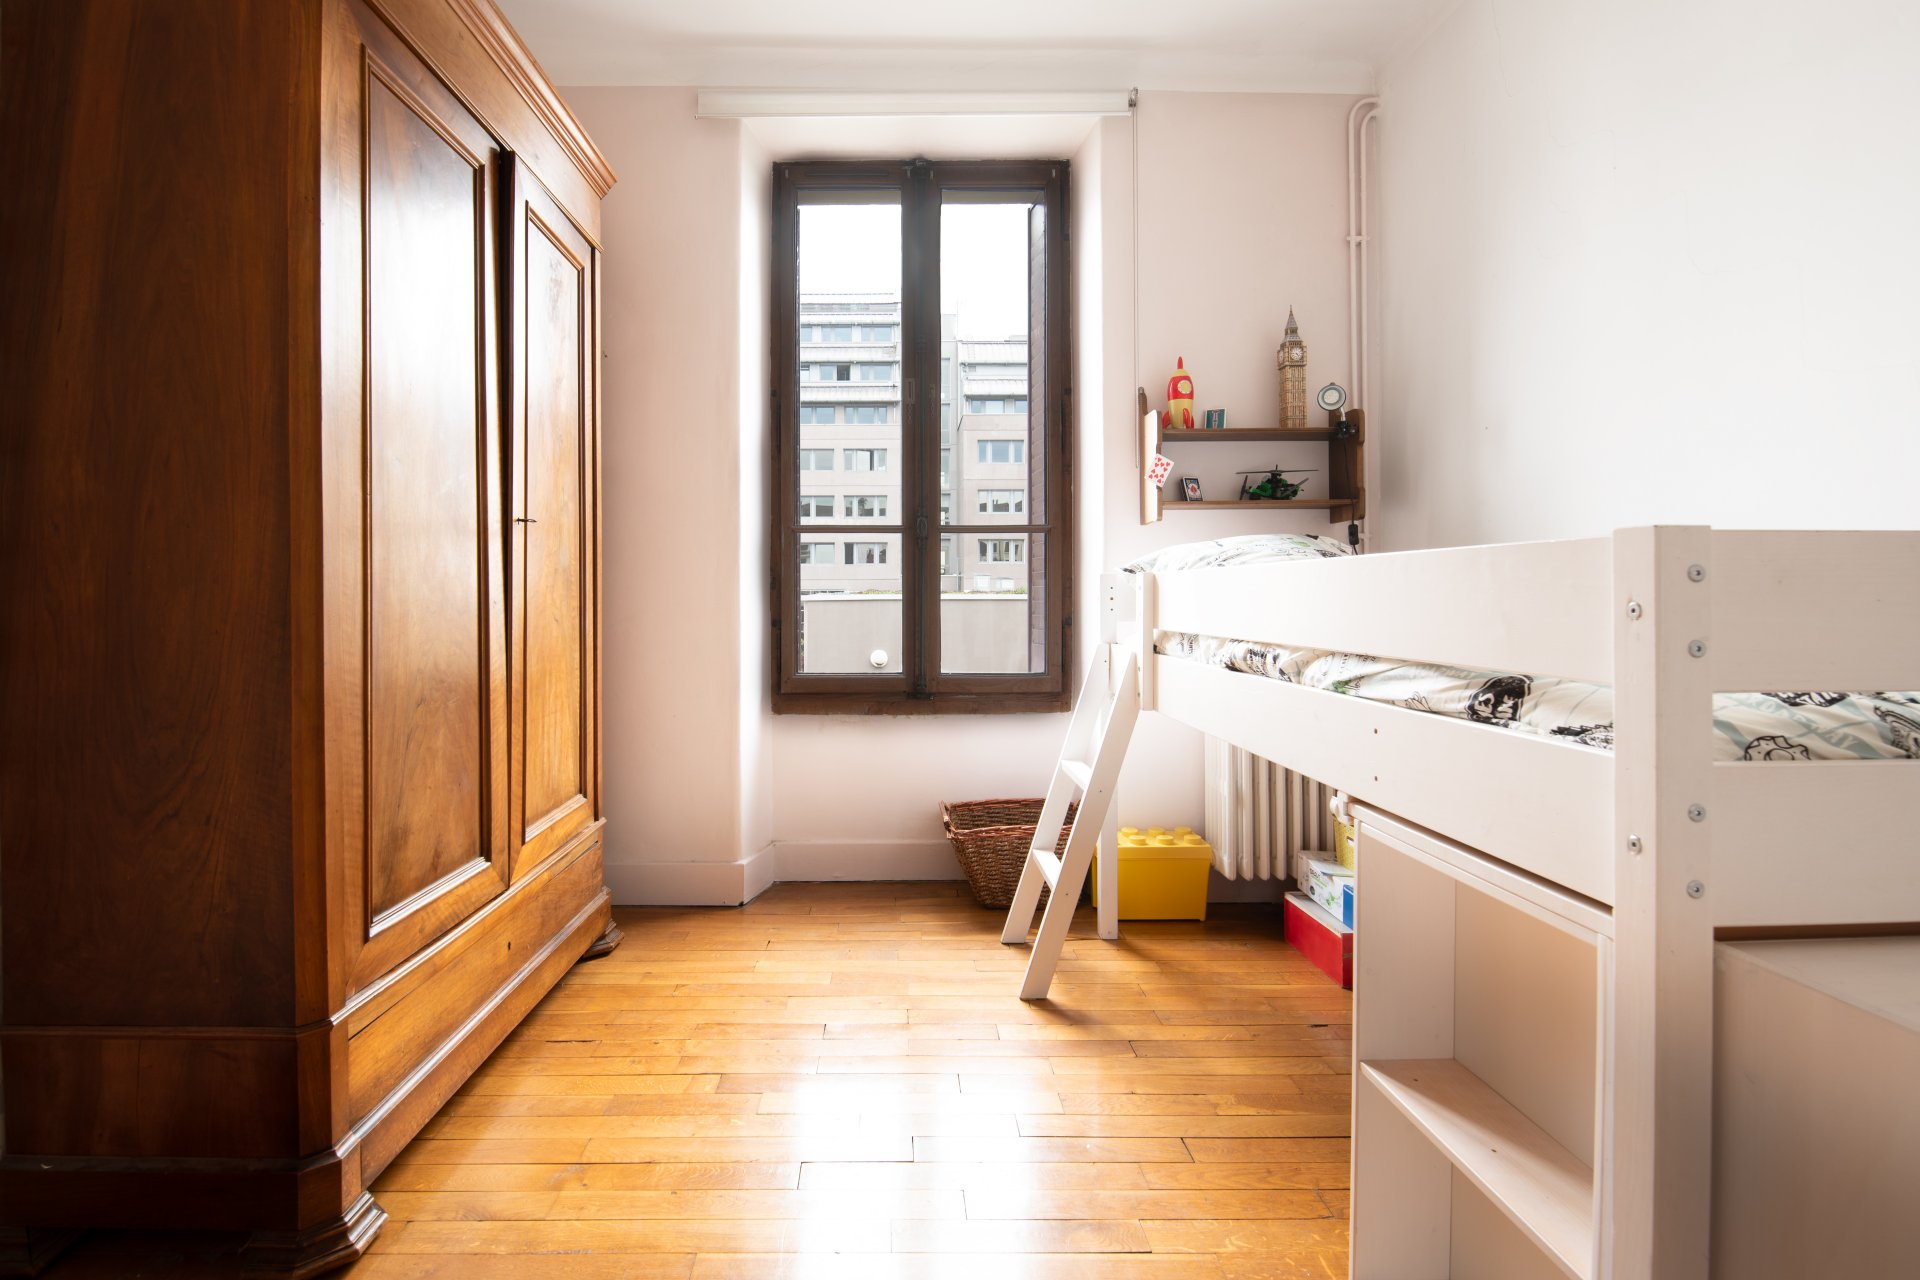 Triangle d'Or - ANNECY - Appartement dans maison